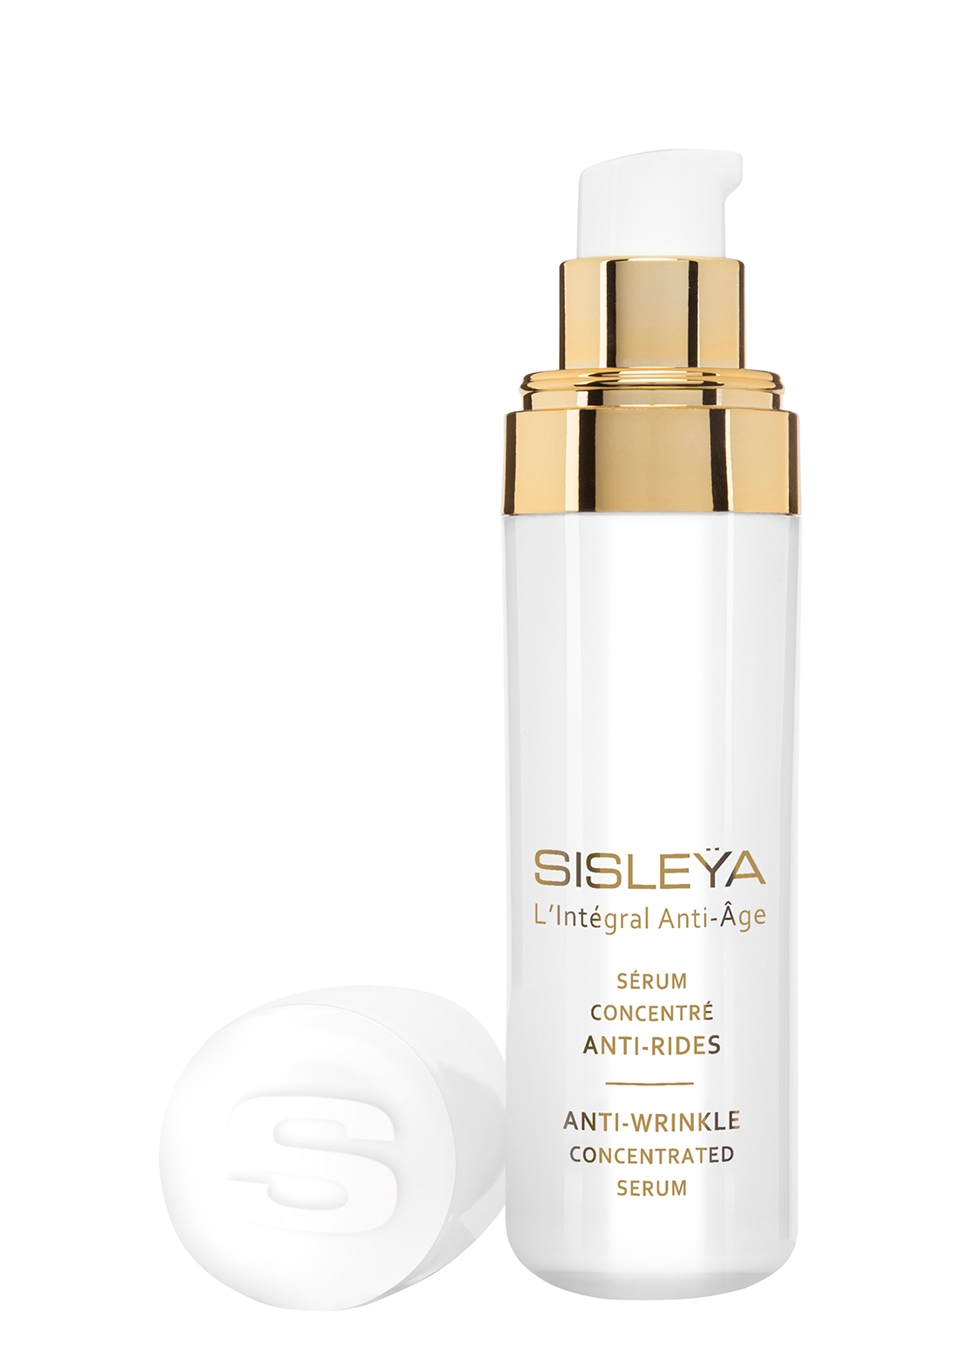 Sisleÿa L'Intégral Anti-Age Anti-Wrinkle Concentrated Serum 30ml